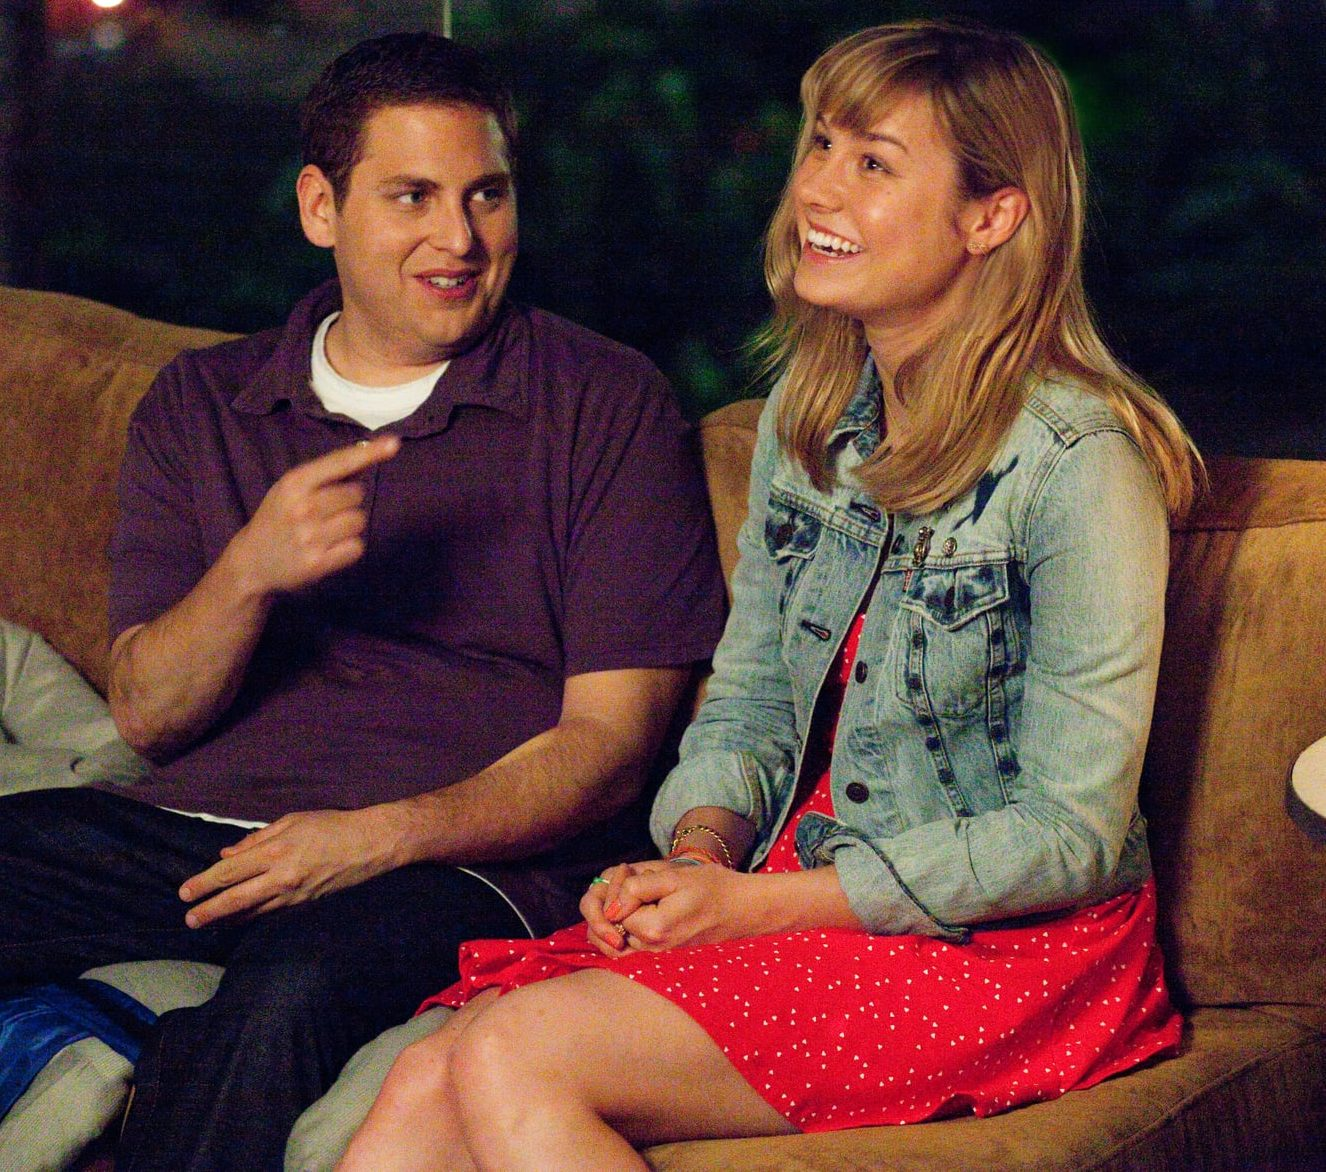 Jonah Hill Brie Larson 21 Jump Street e1612262946704 35 Great Movie Romances That Are Actually Deeply Problematic